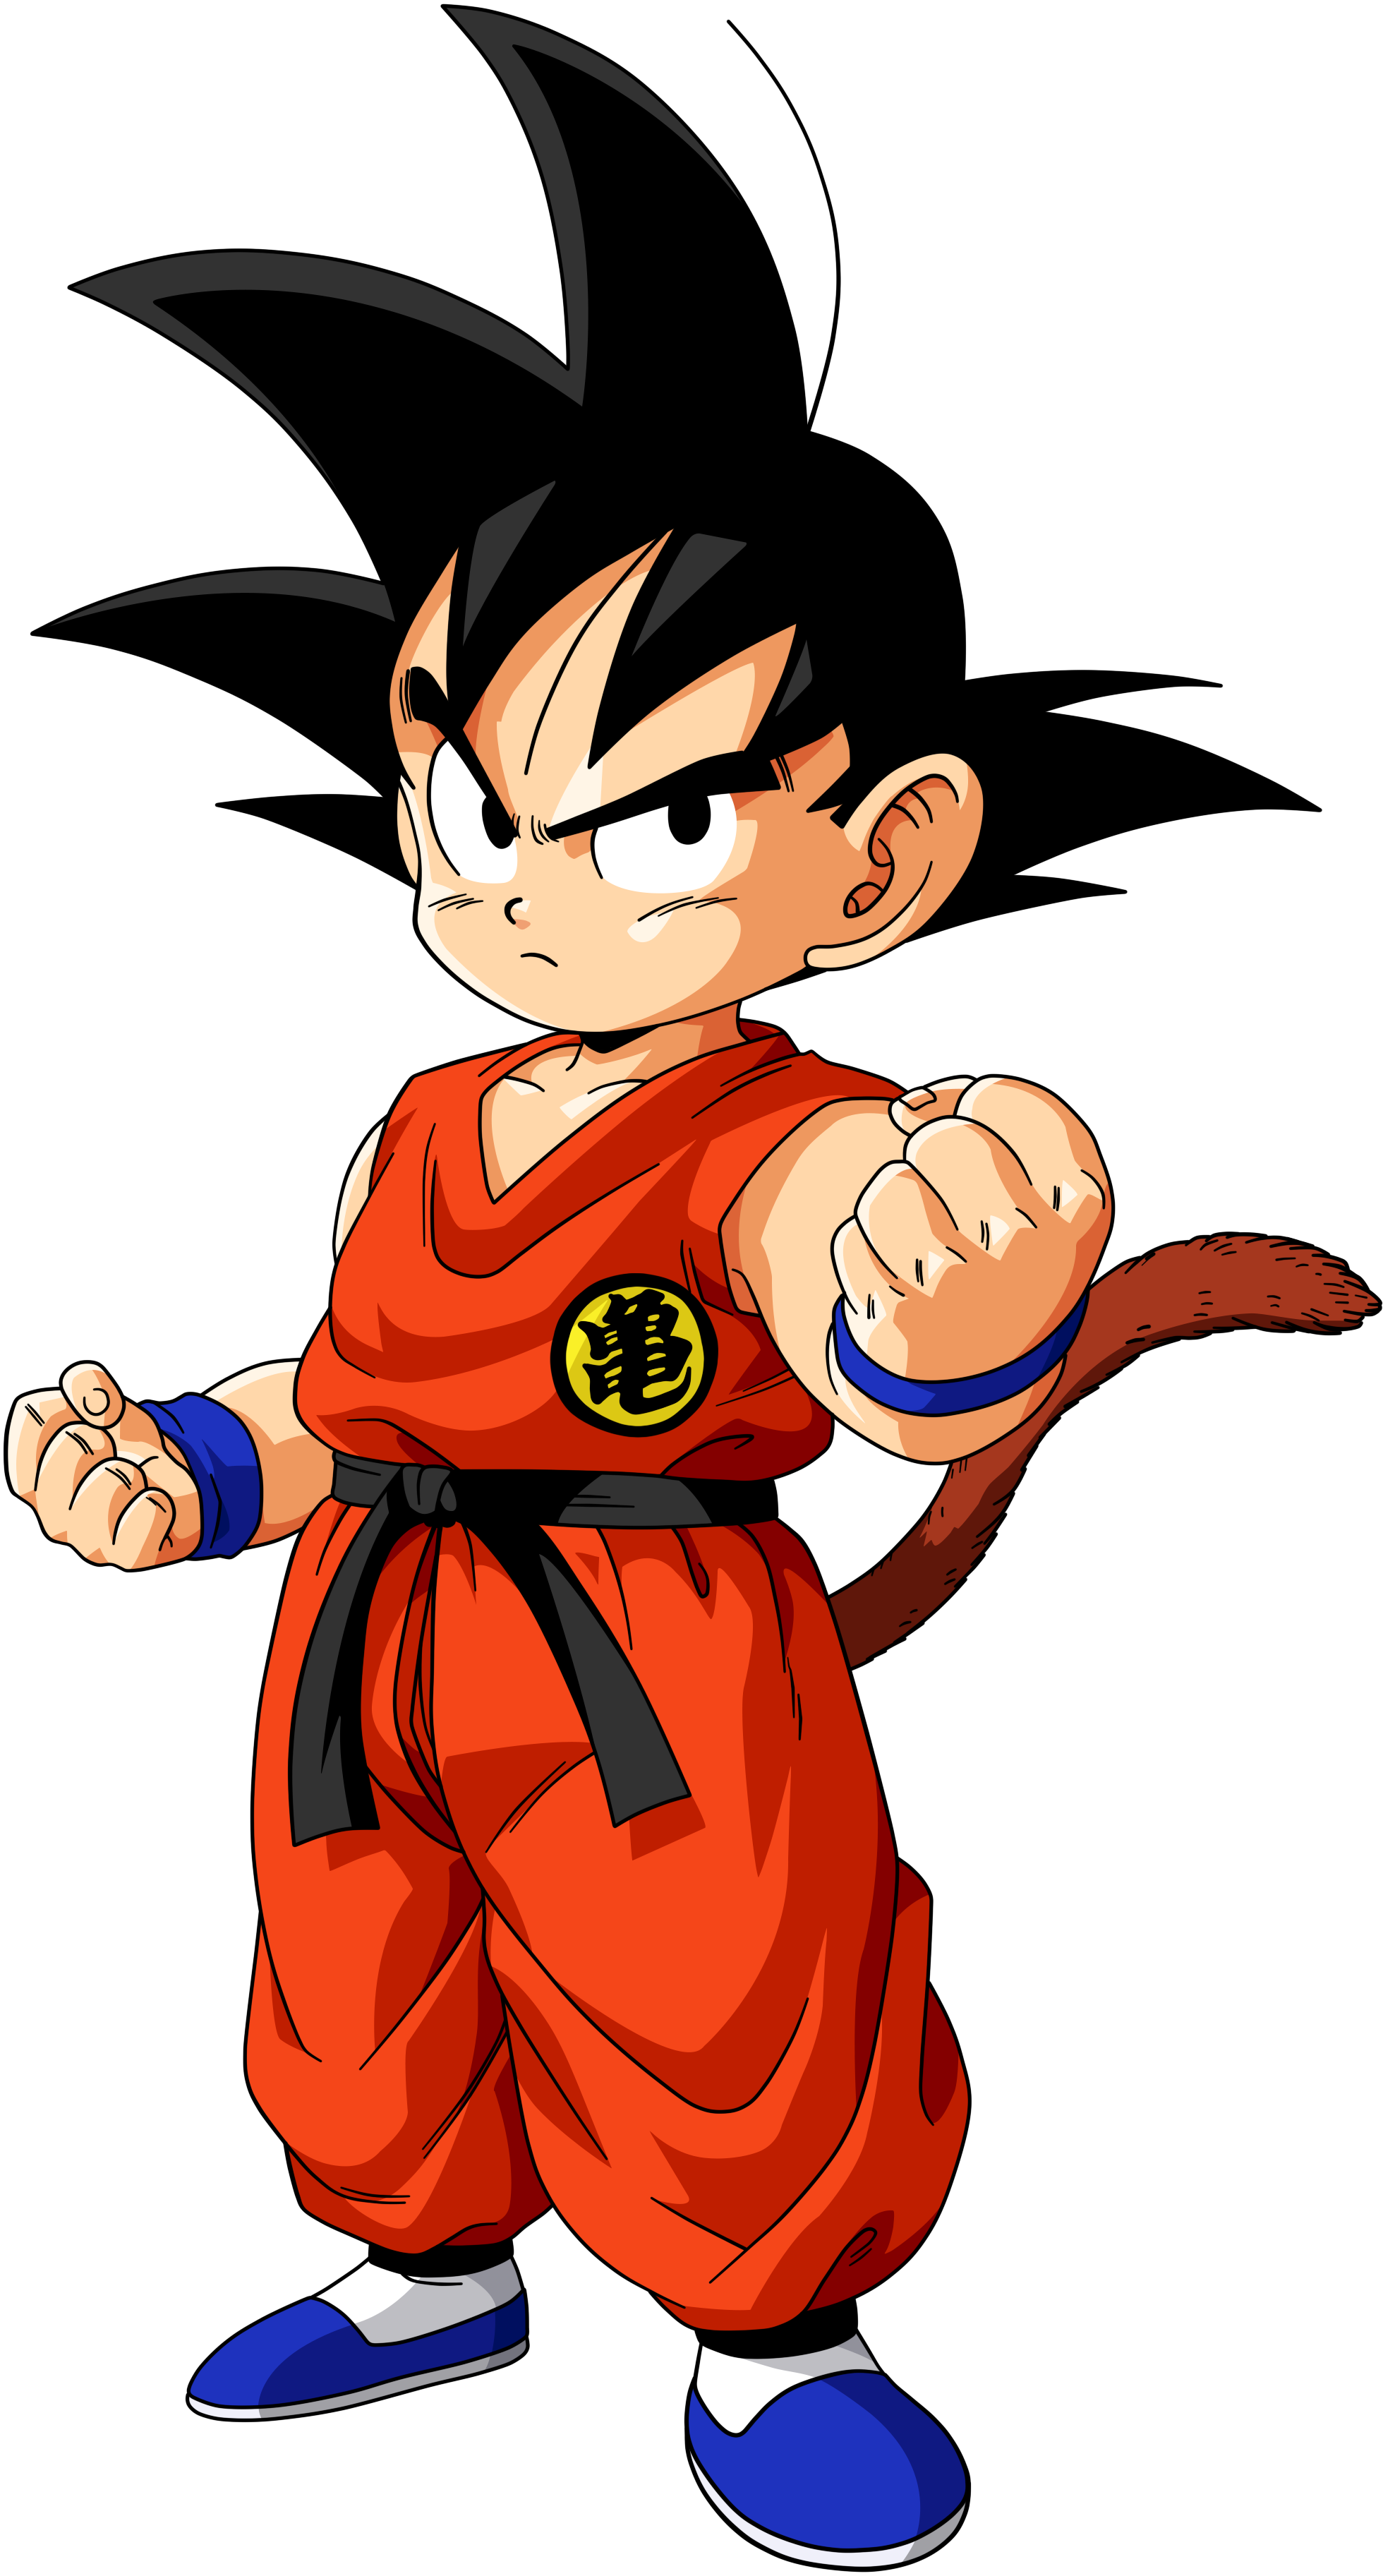 Dragon Ball Z Cartoon Characters Names : Son goku teenager vs battles wiki fandom powered by